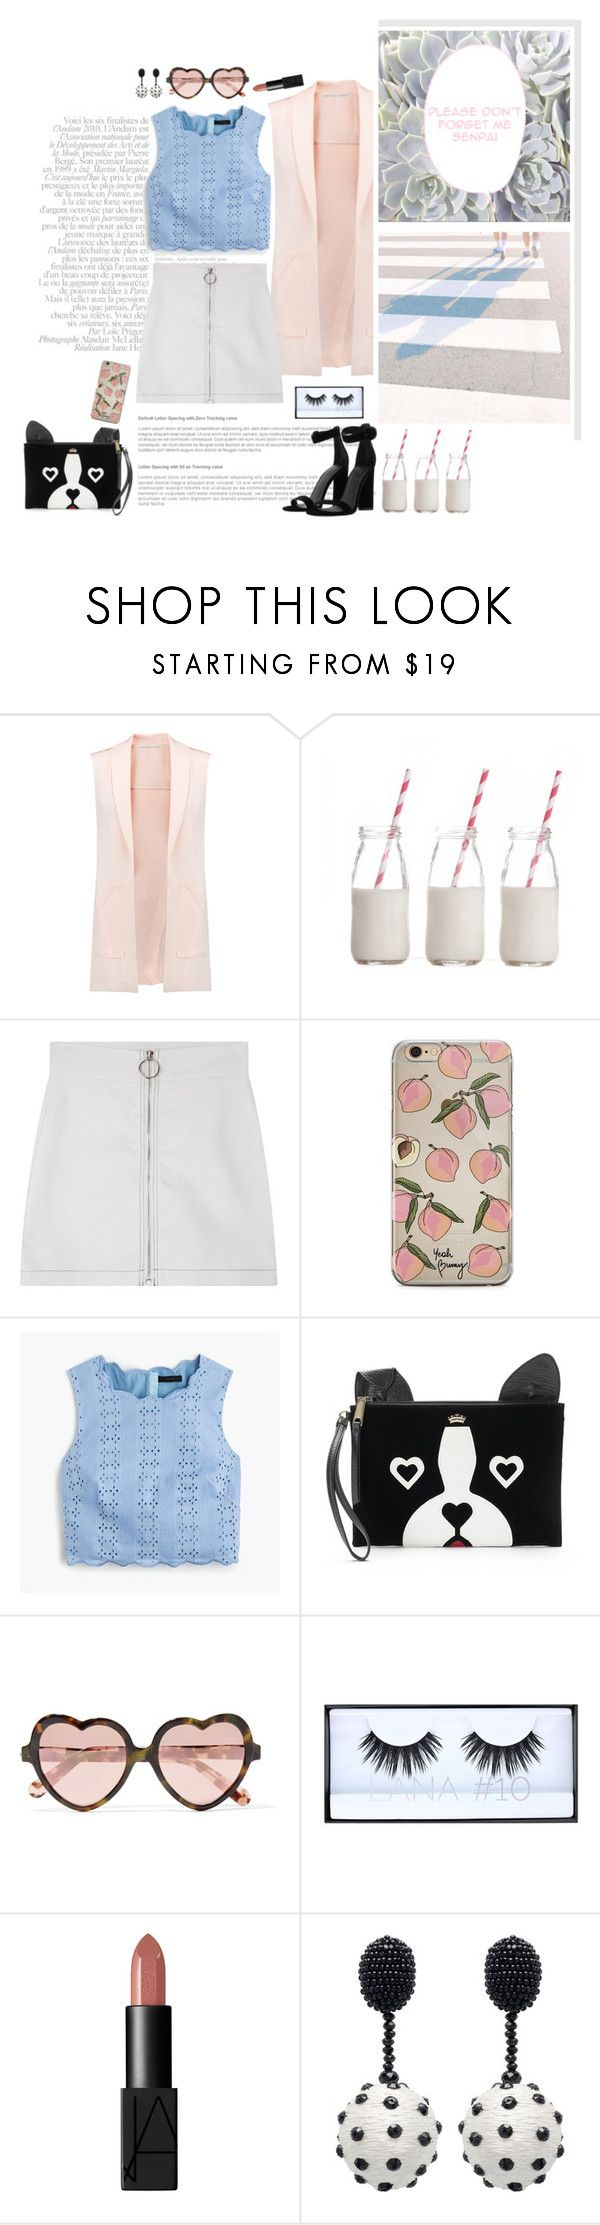 """""""👼"""" by emyemoemu ❤ liked on Polyvore featuring Rebecca Minkoff, Dress My Cupcake, J.Crew, Juicy Couture, Cutler and Gross, Huda Beauty, NARS Cosmetics, Oscar de la Renta and Kendall + Kylie"""